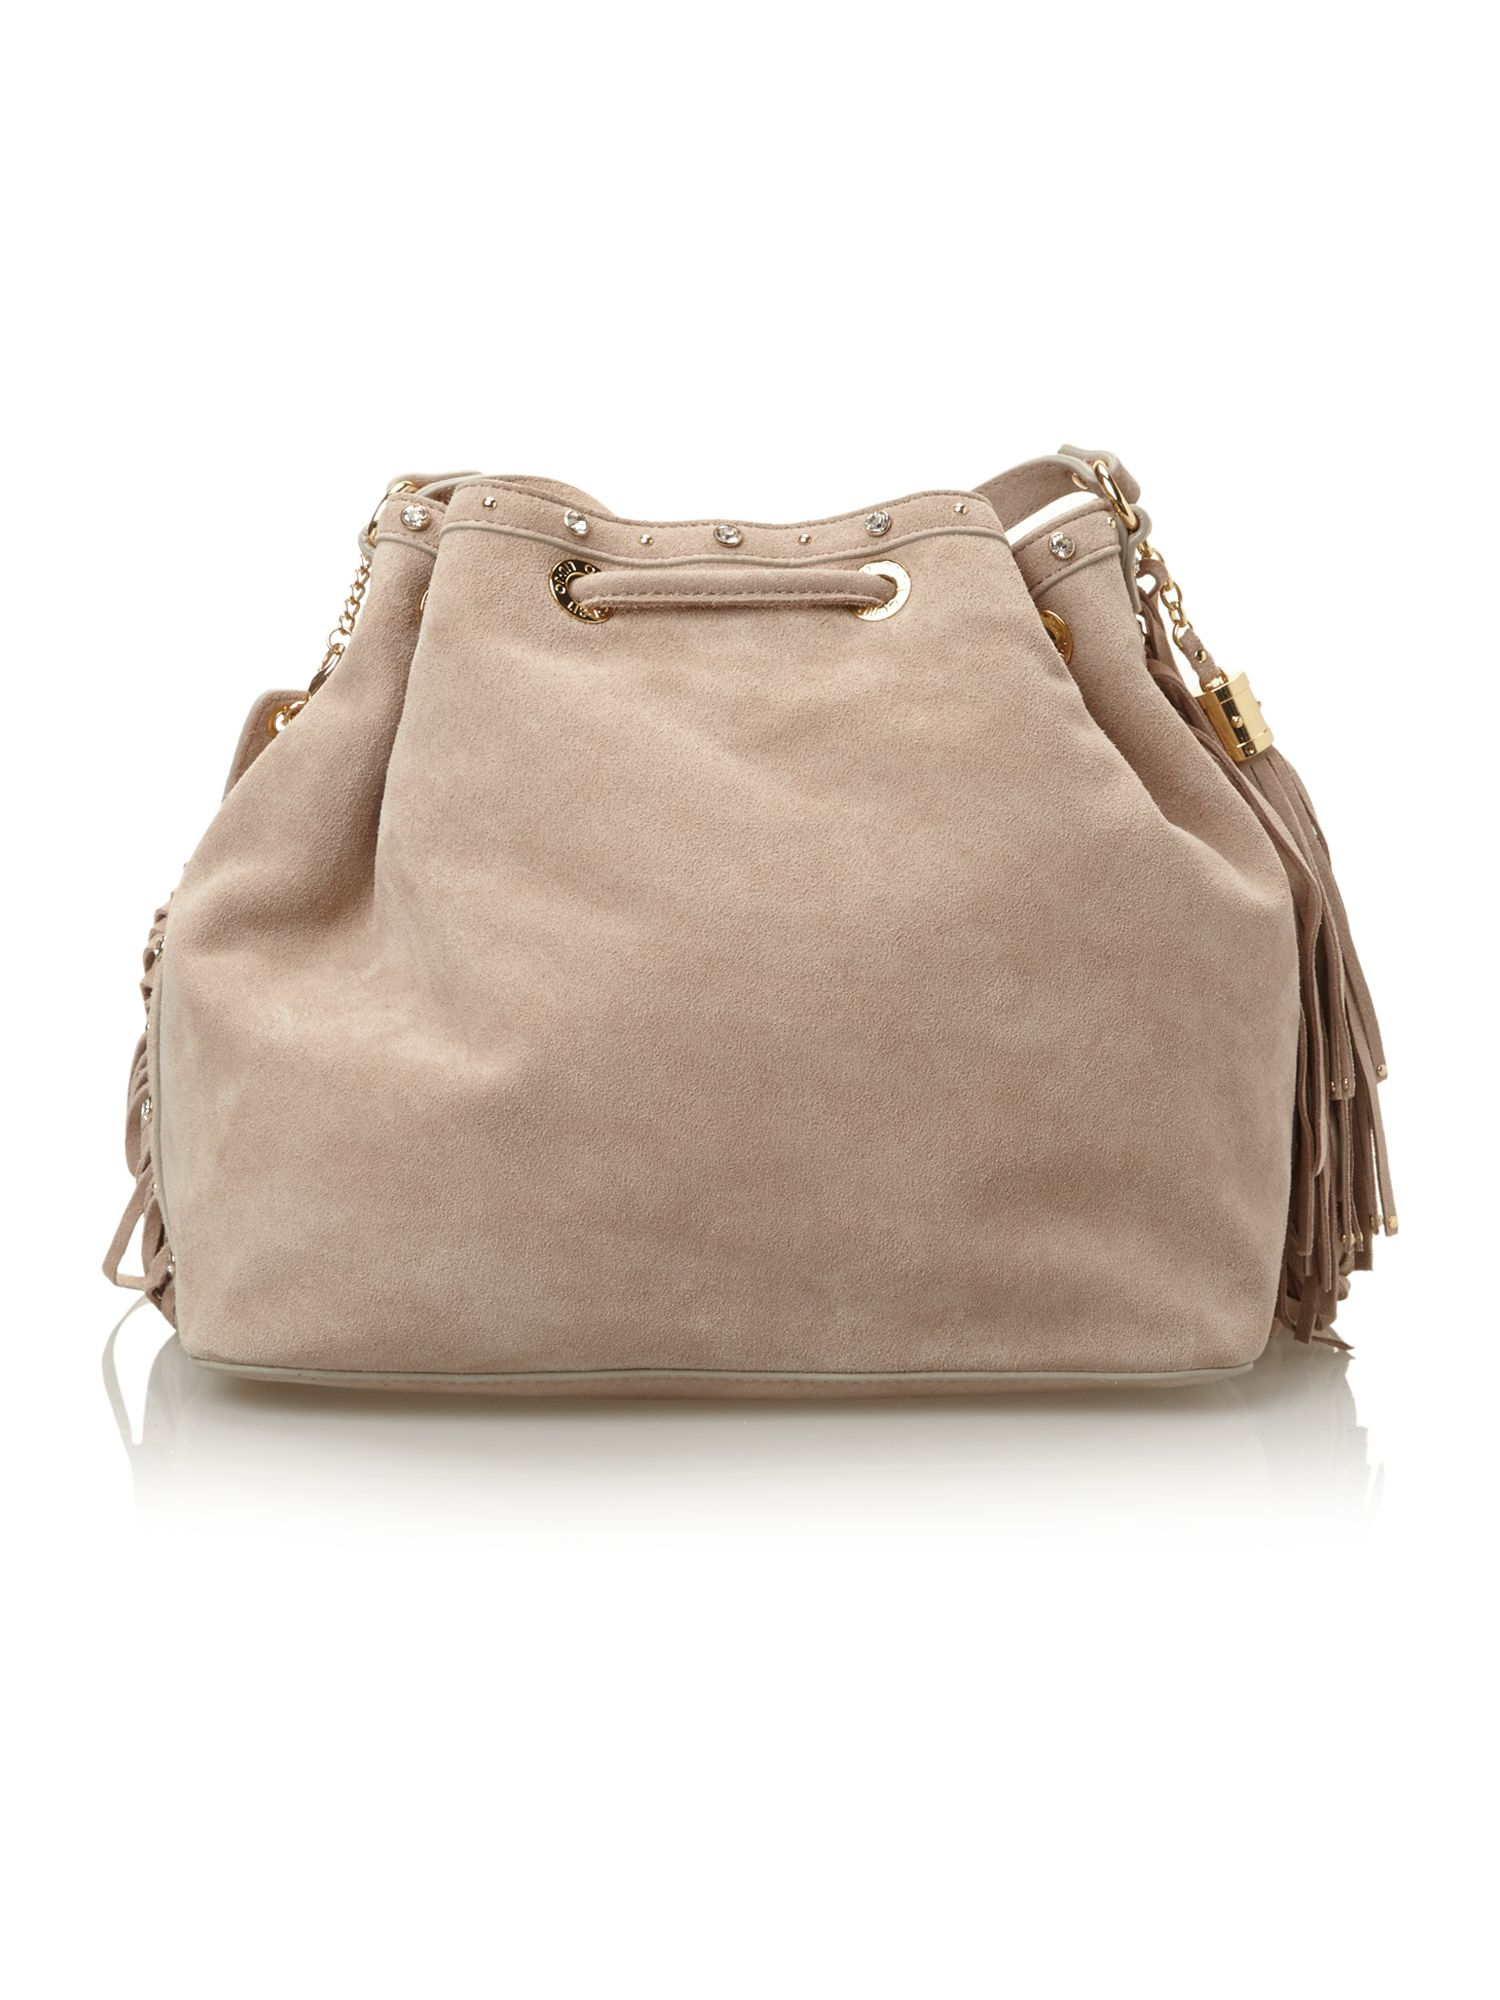 Diana neutral tassle crossbody